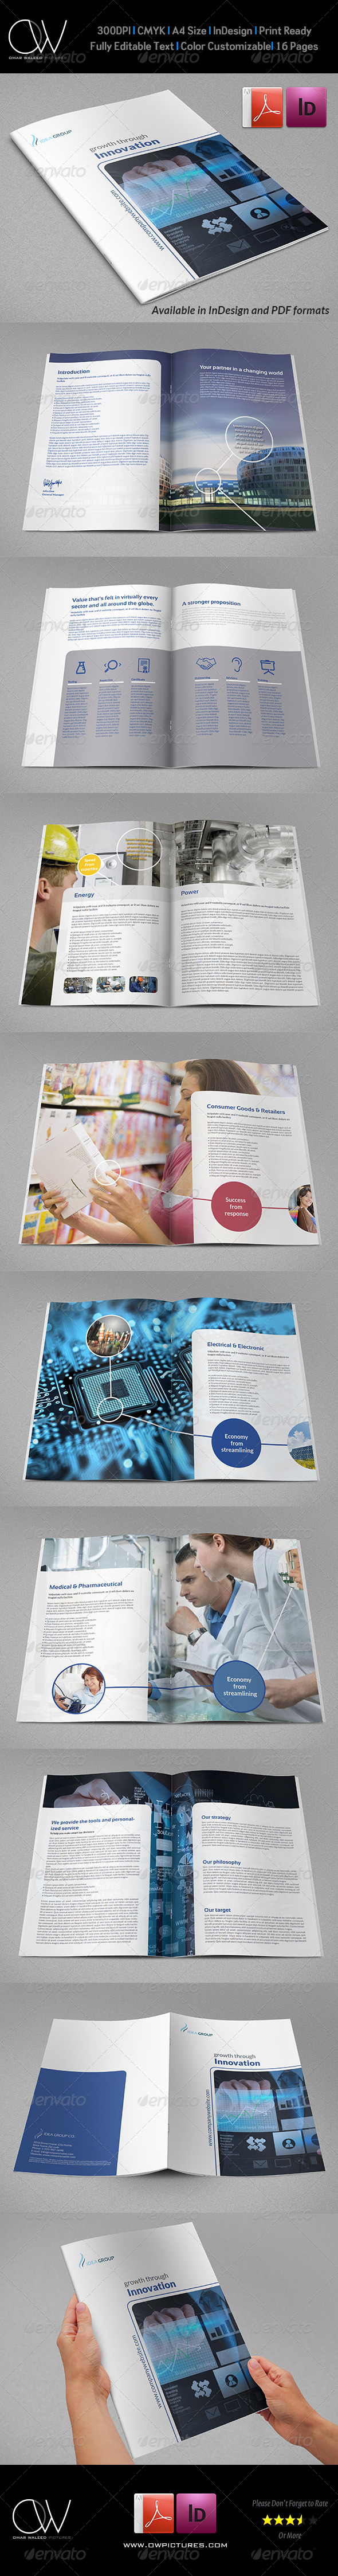 GraphicRiver Corporate Brochure Template Vol.27 16 Pages 6942003